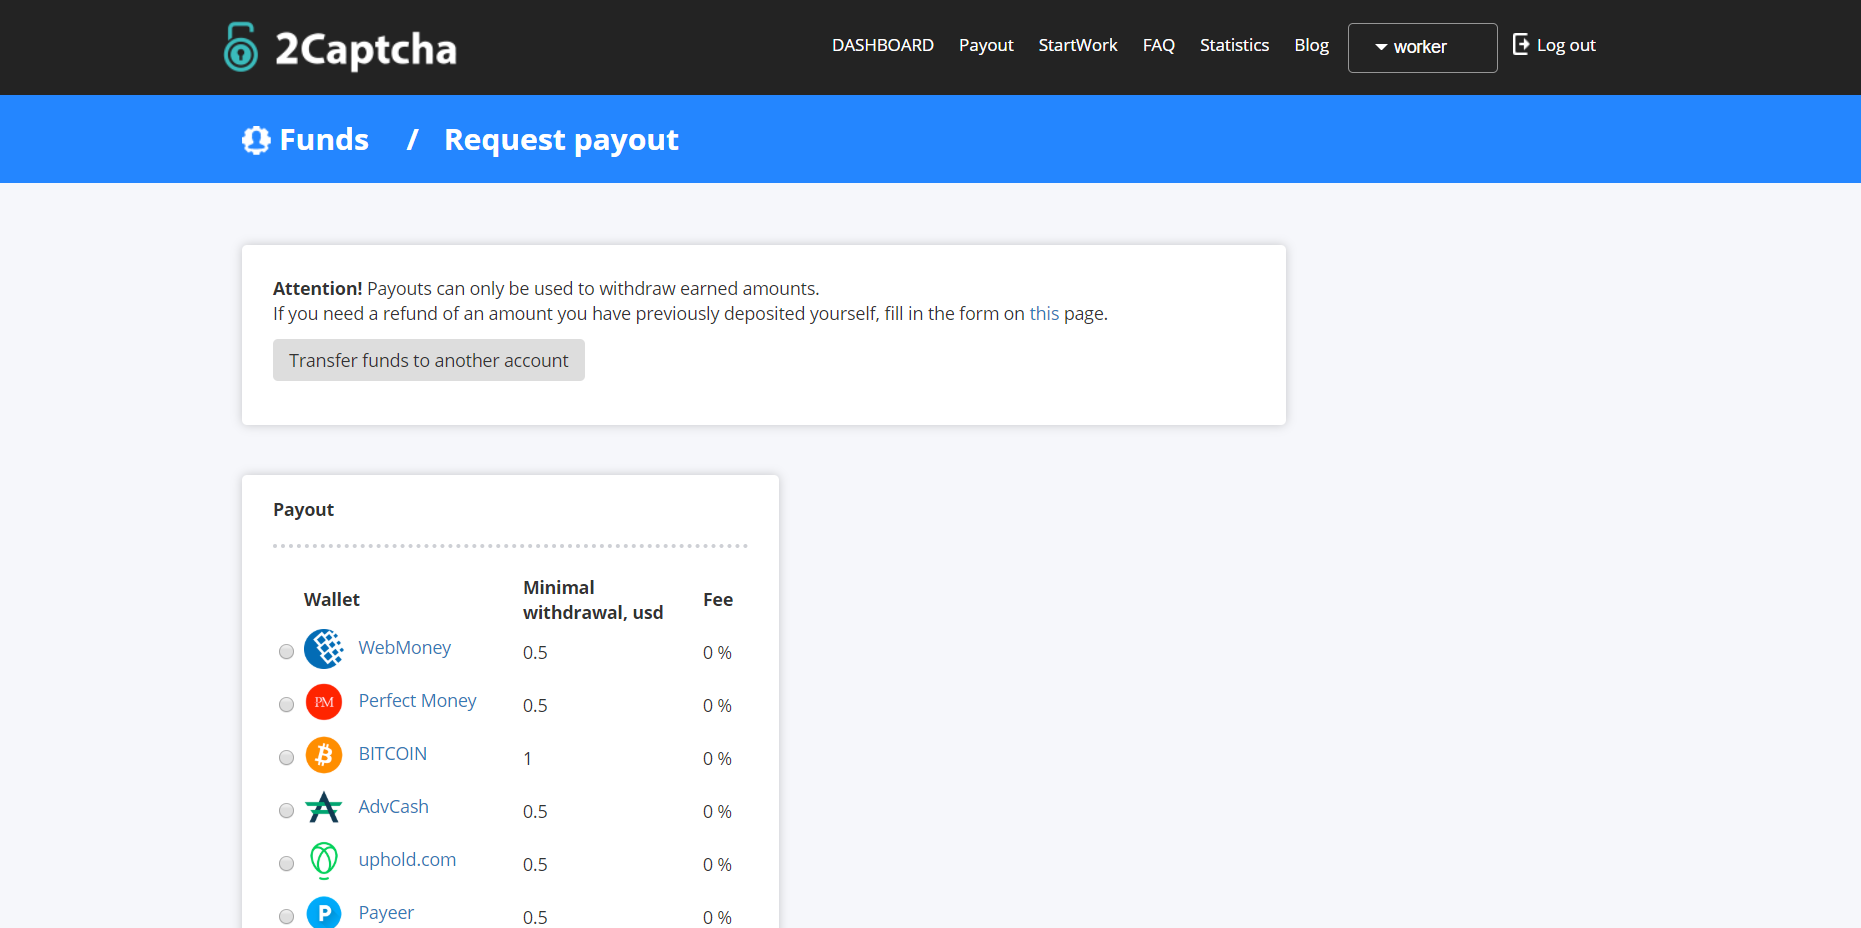 2captcha request payout page